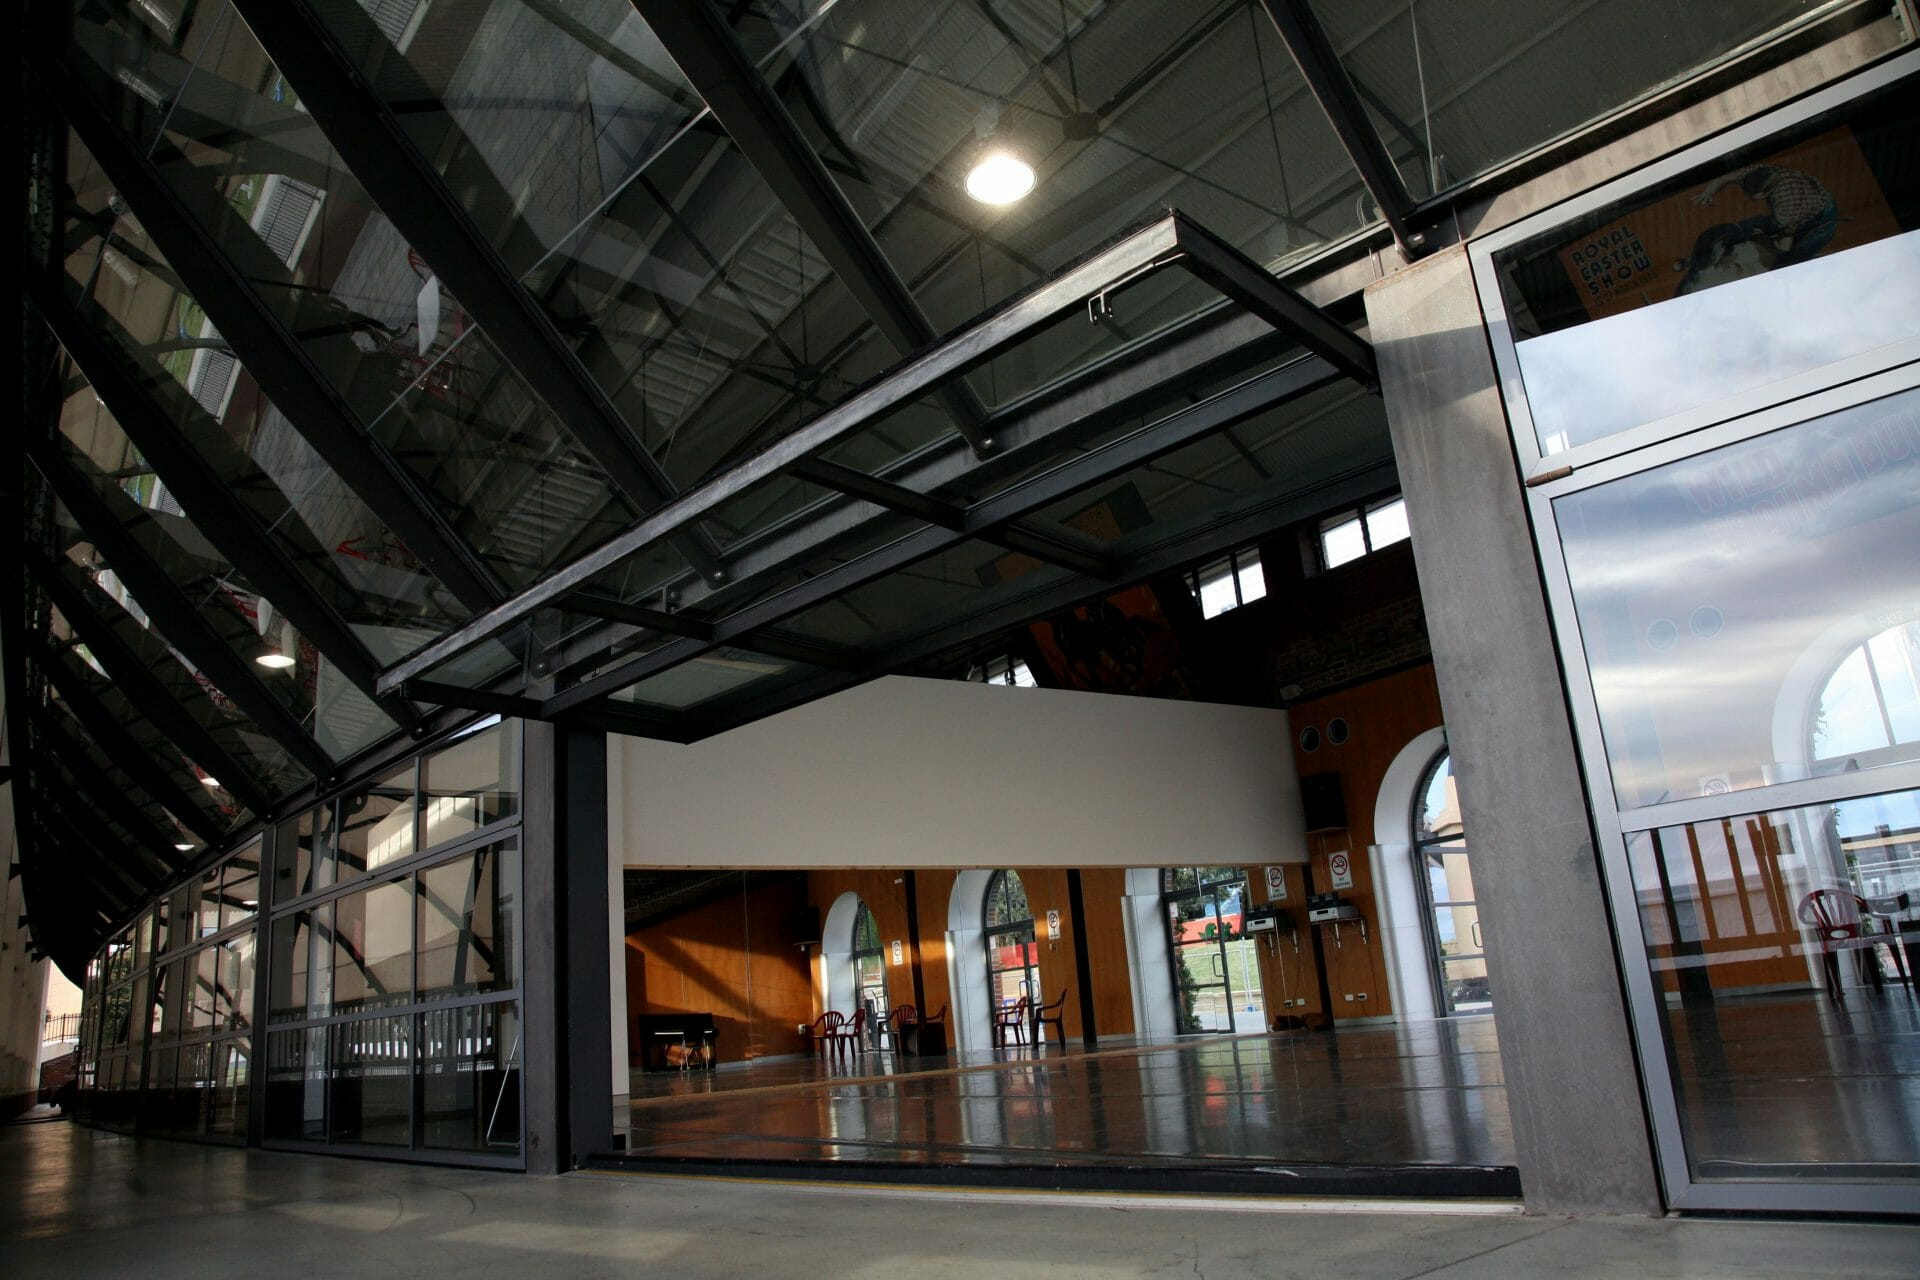 an industrial fitout project for Brent Street Studios